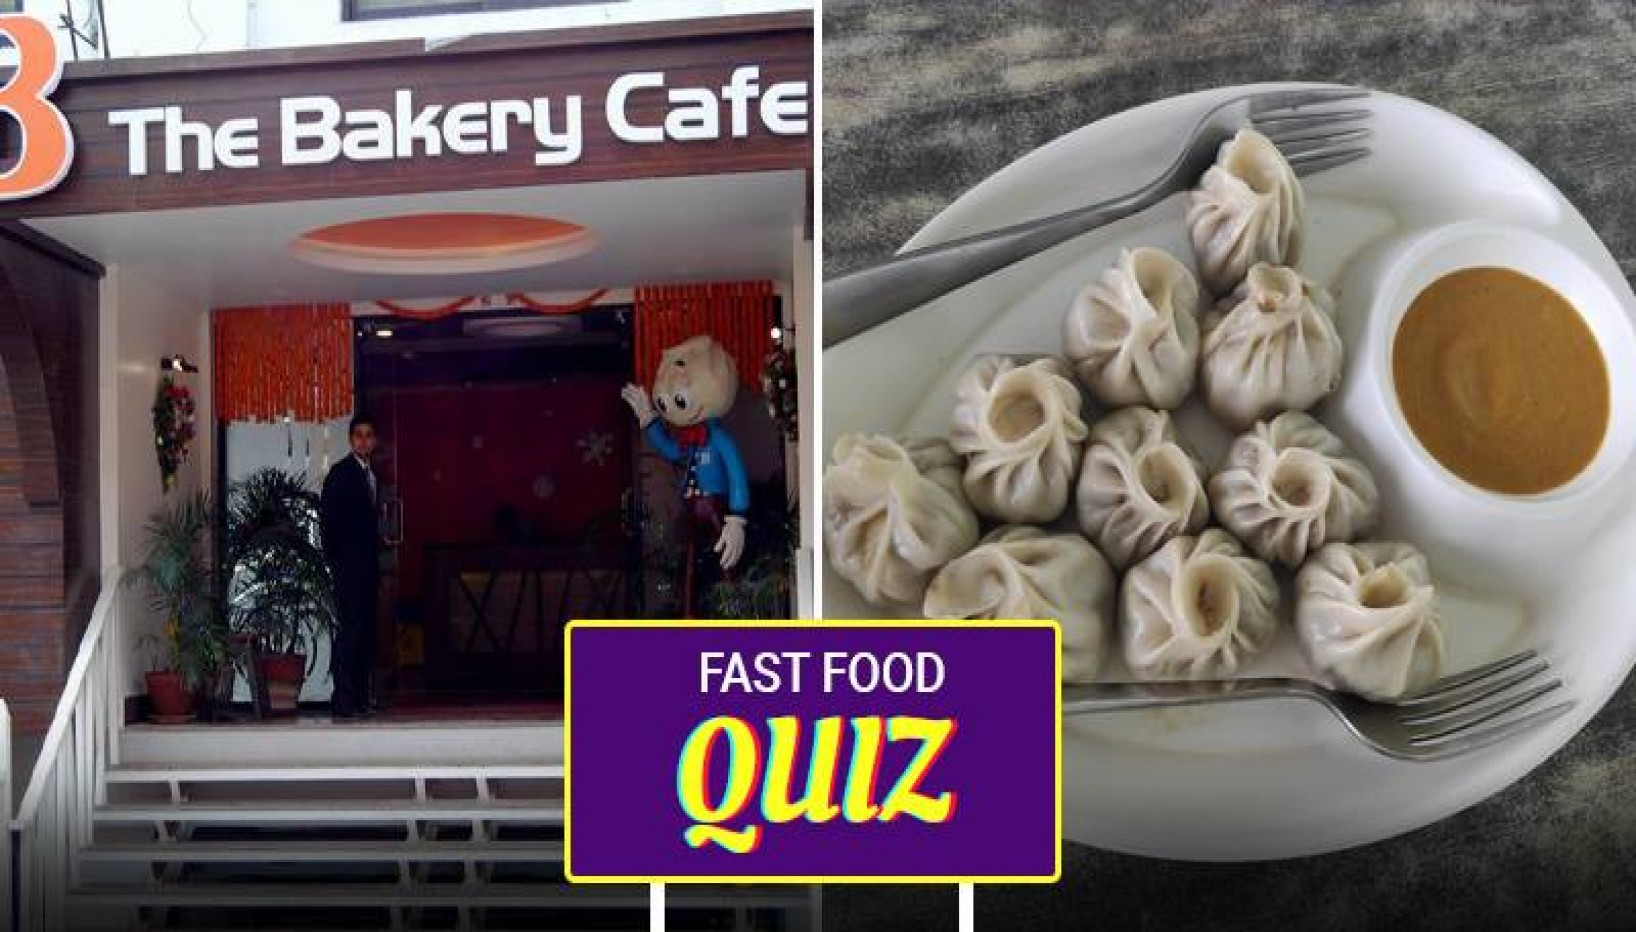 How Well Do You Know Your Fast-Food Restaurants? Take This Quiz To Find Out